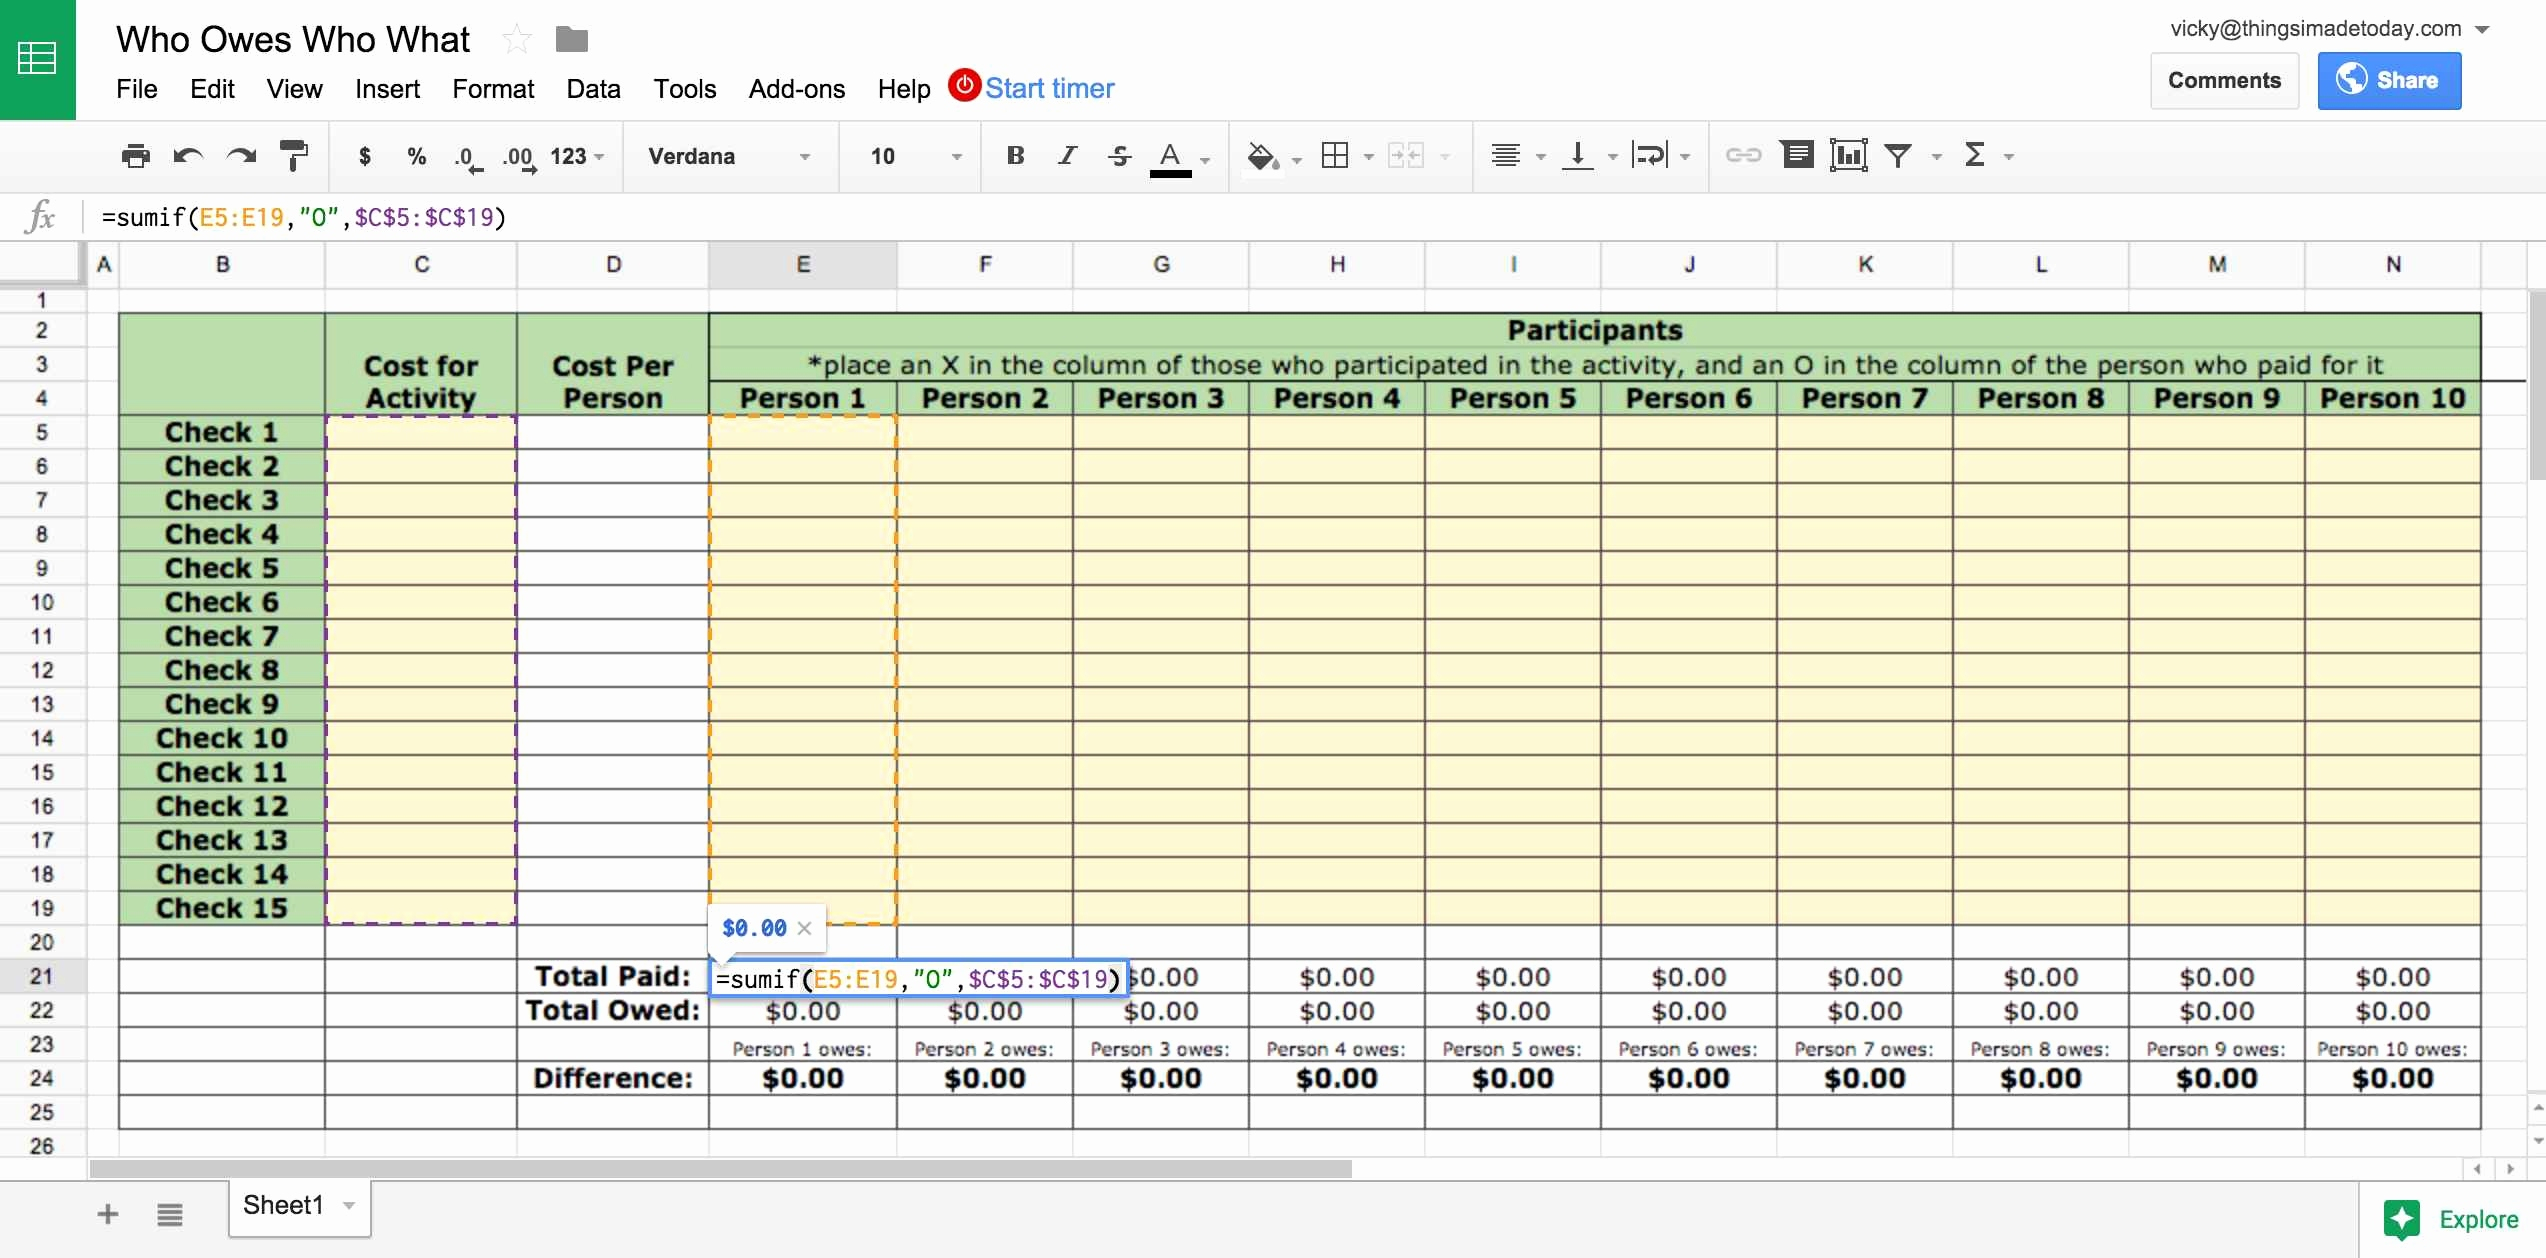 Product Pricing Spreadsheet Regarding Product Pricing Spreadsheet  Aljererlotgd